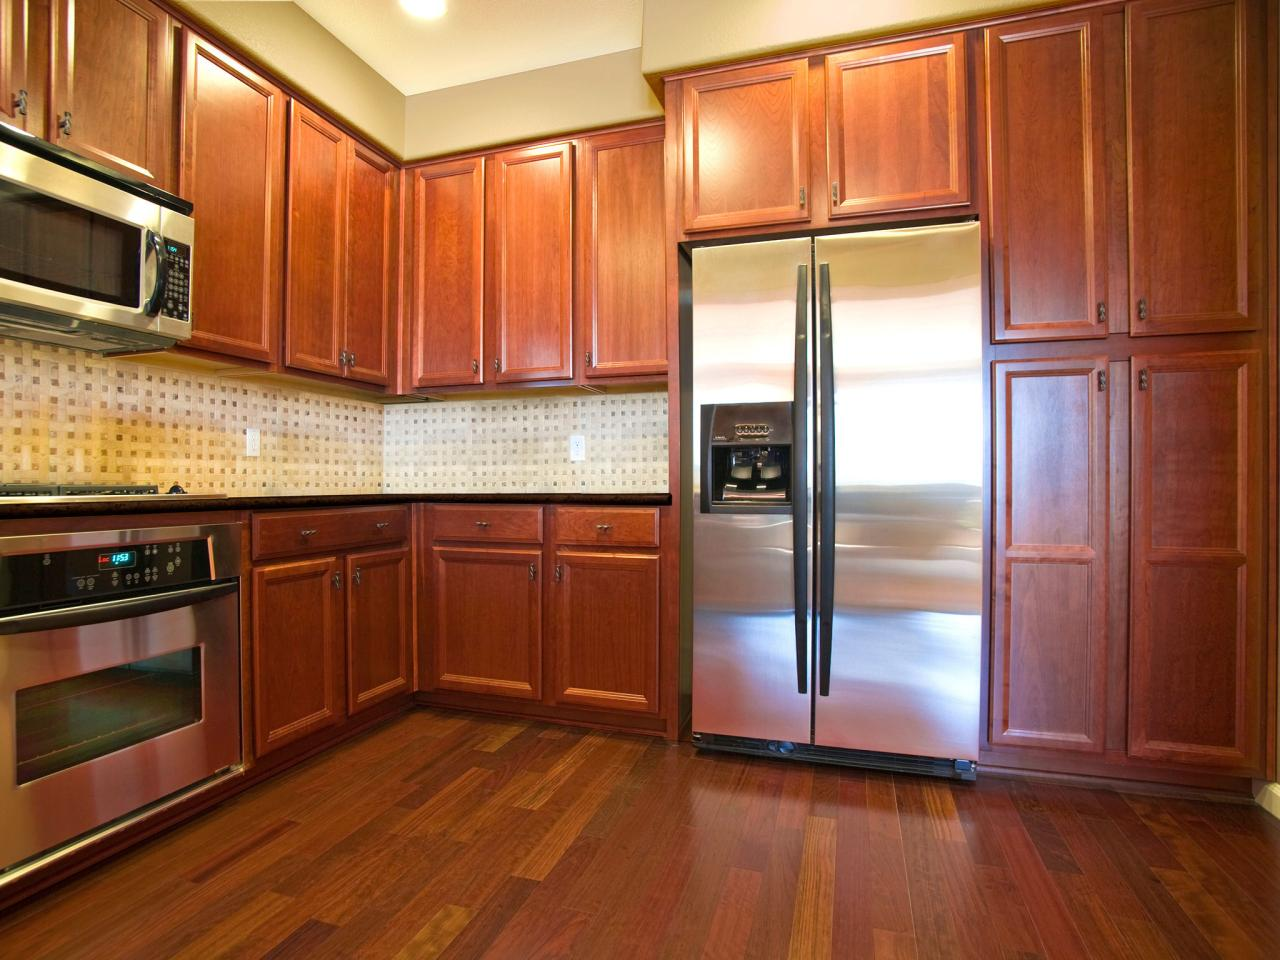 Oak Kitchen Cabinets: Pictures, Ideas & Tips From HGTV | HGTV